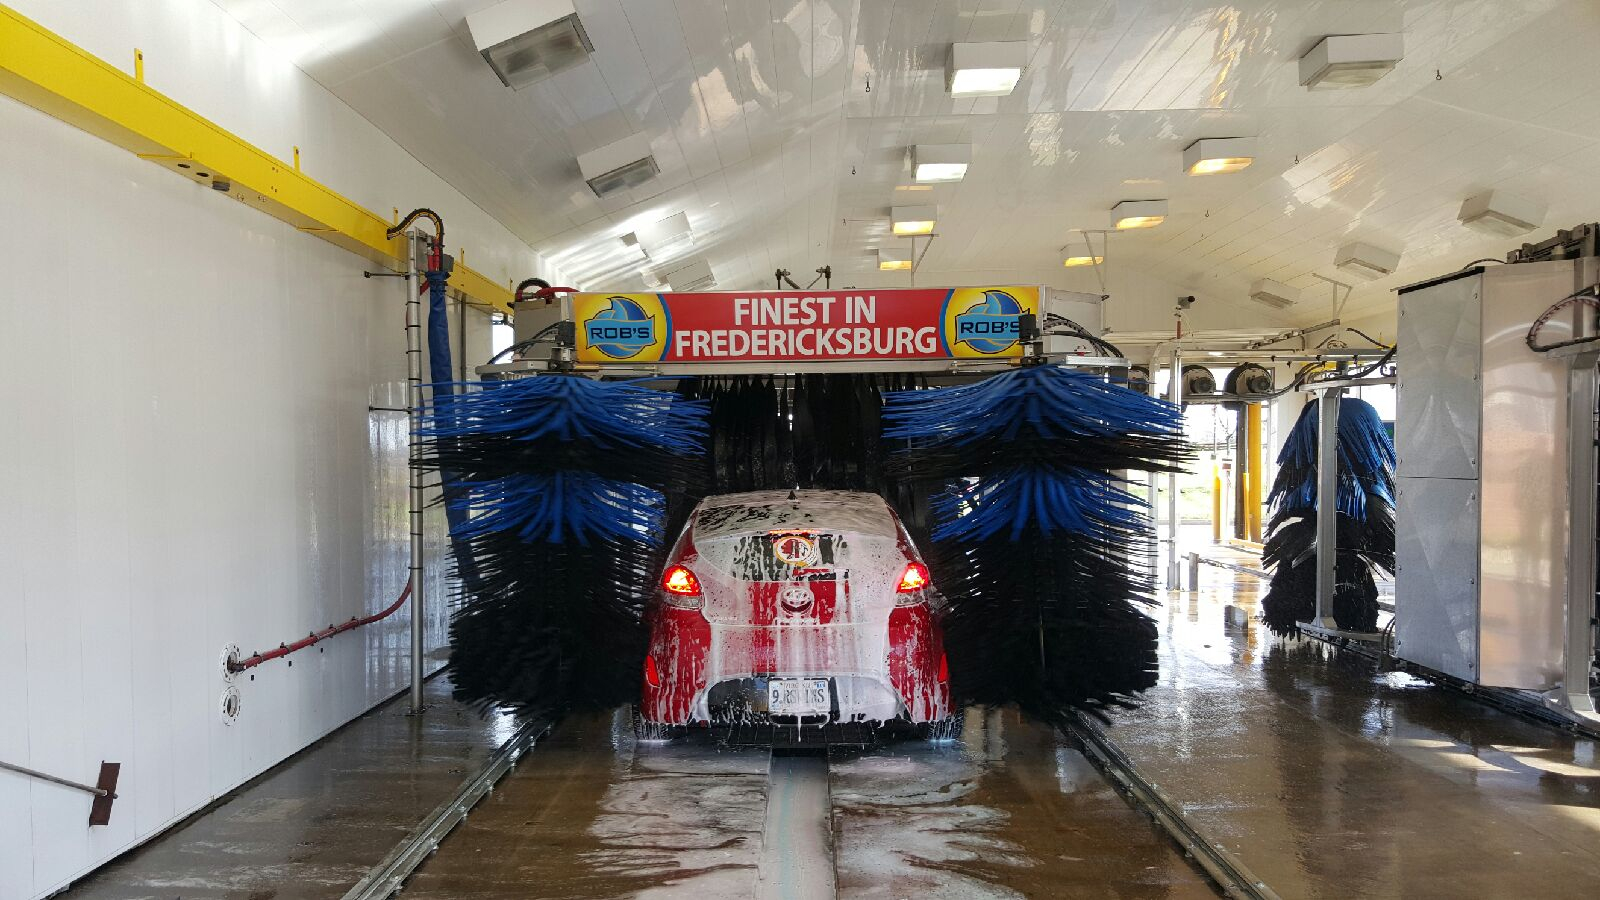 247 automated car wash 247 self service car wash robs car wash eco friendly solutioingenieria Image collections